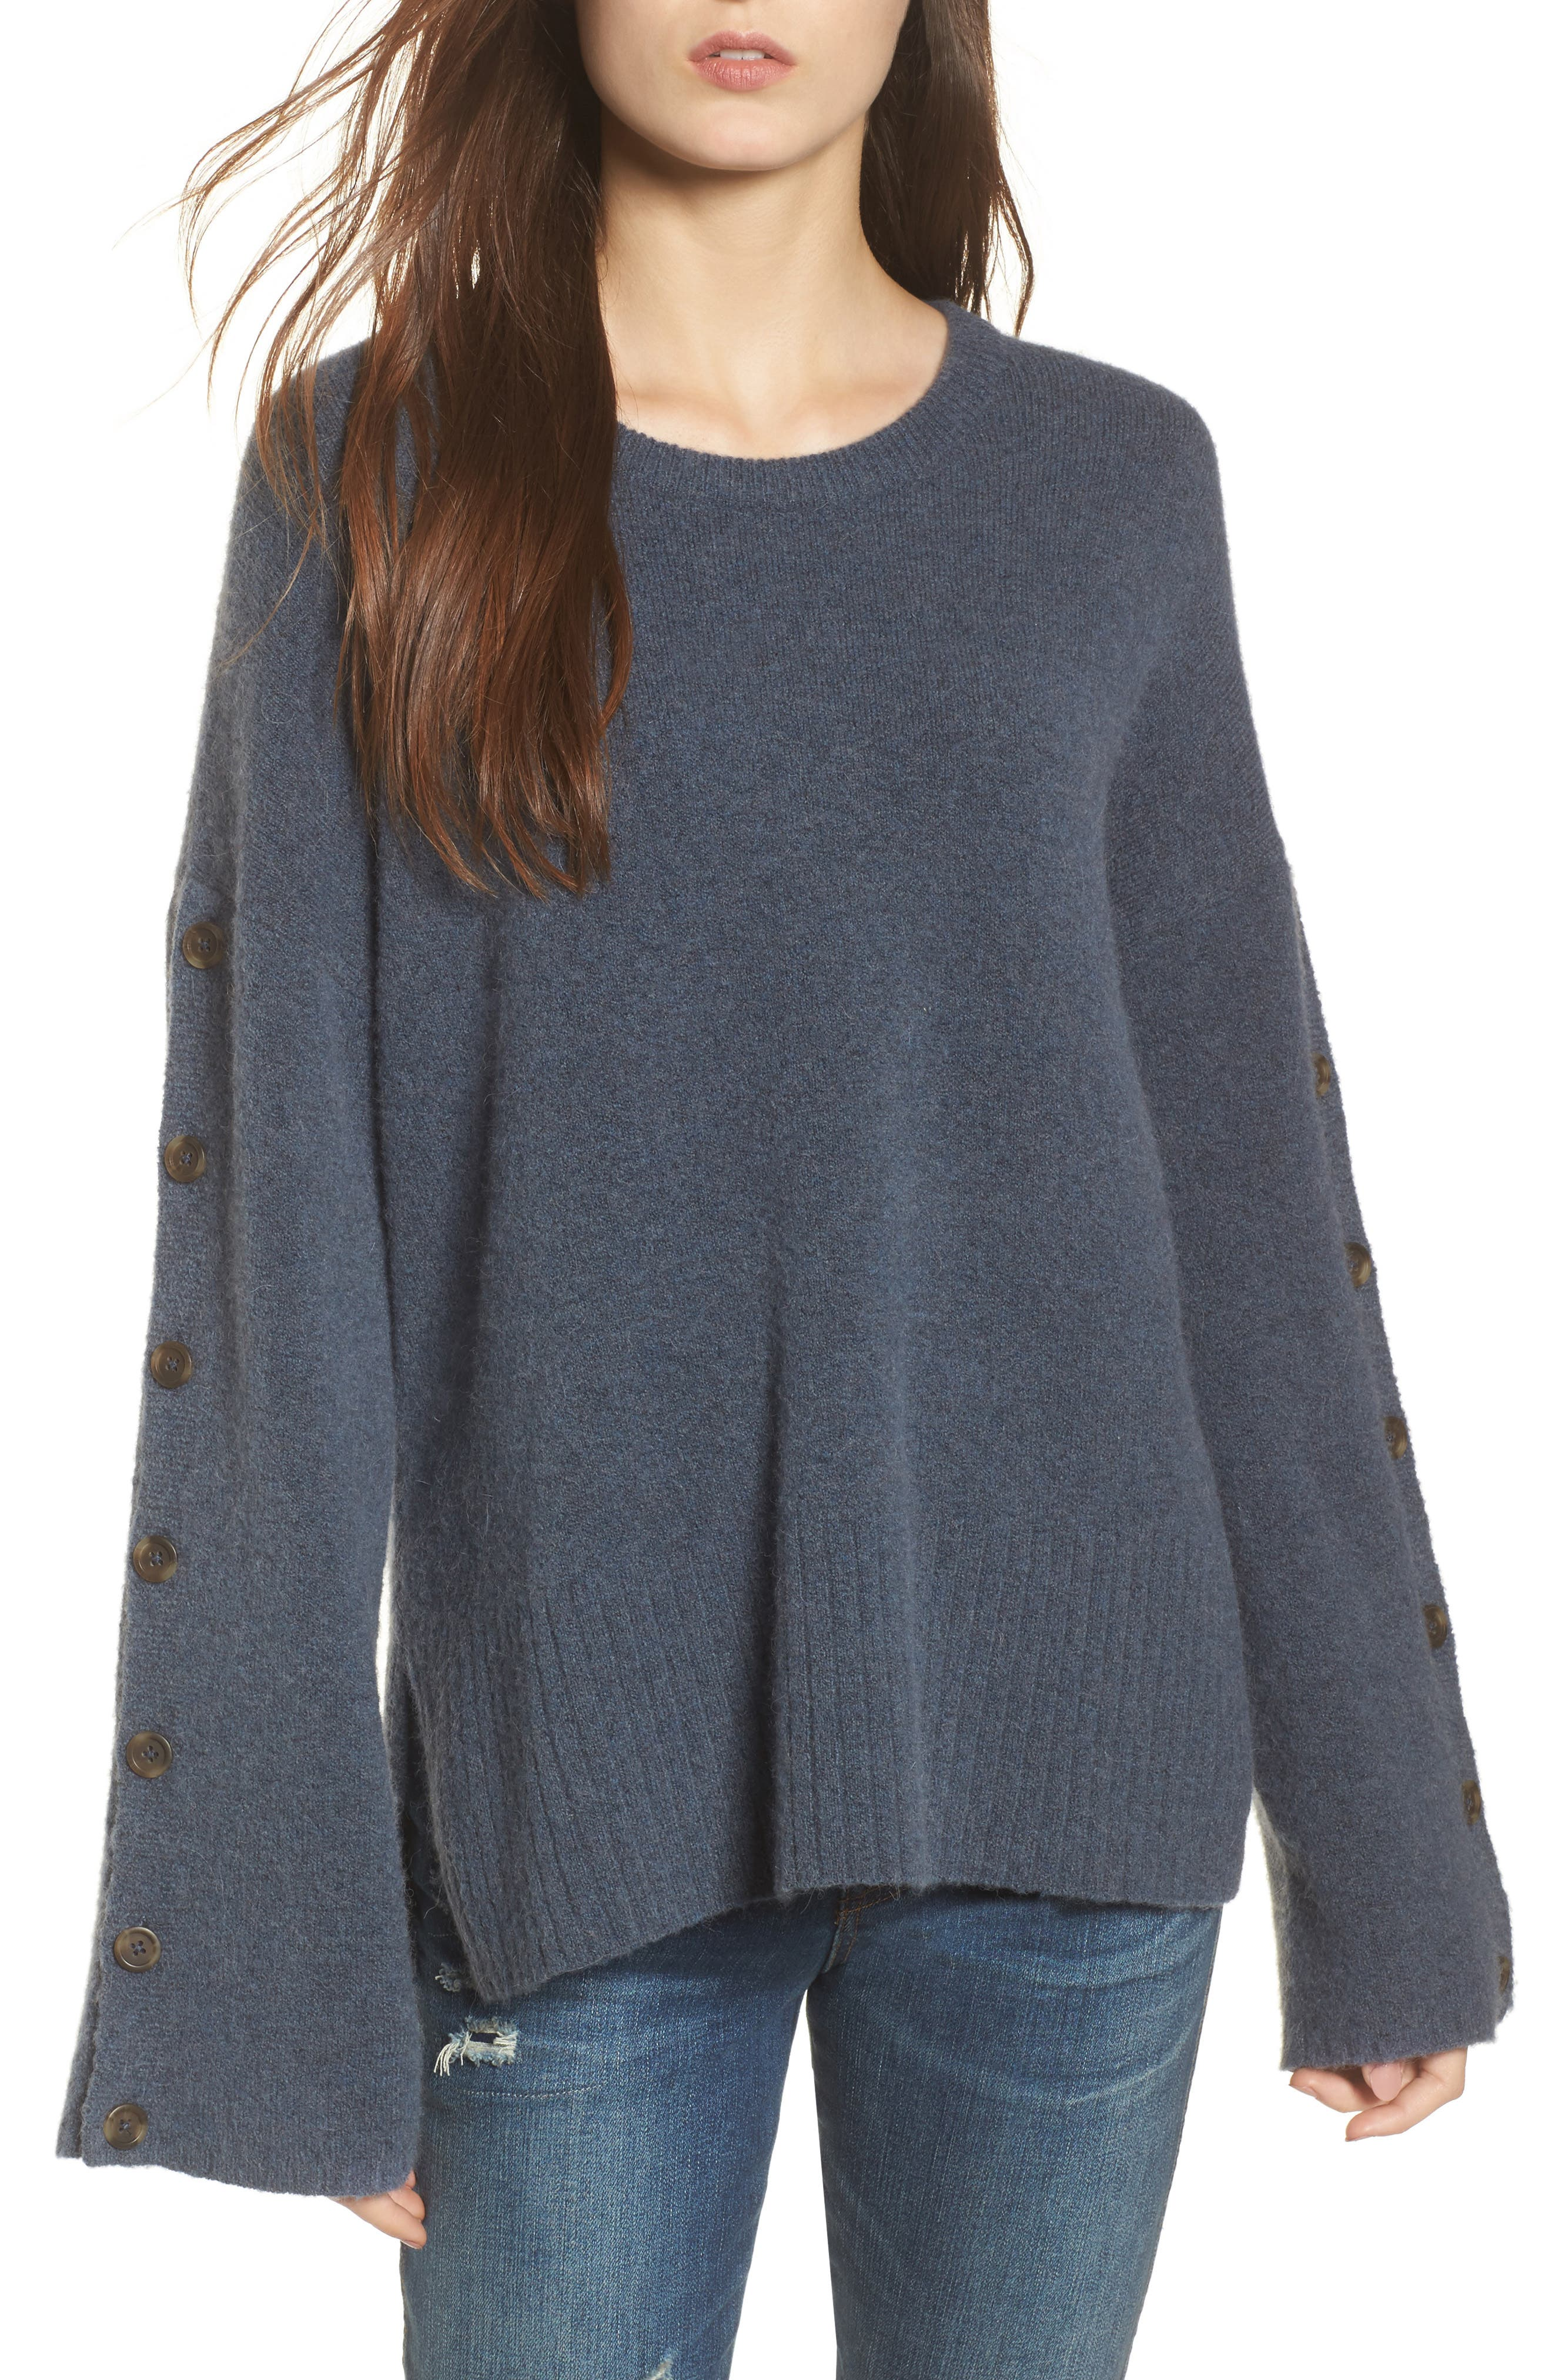 Main Image - Madewell Button Sleeve Pullover Sweater